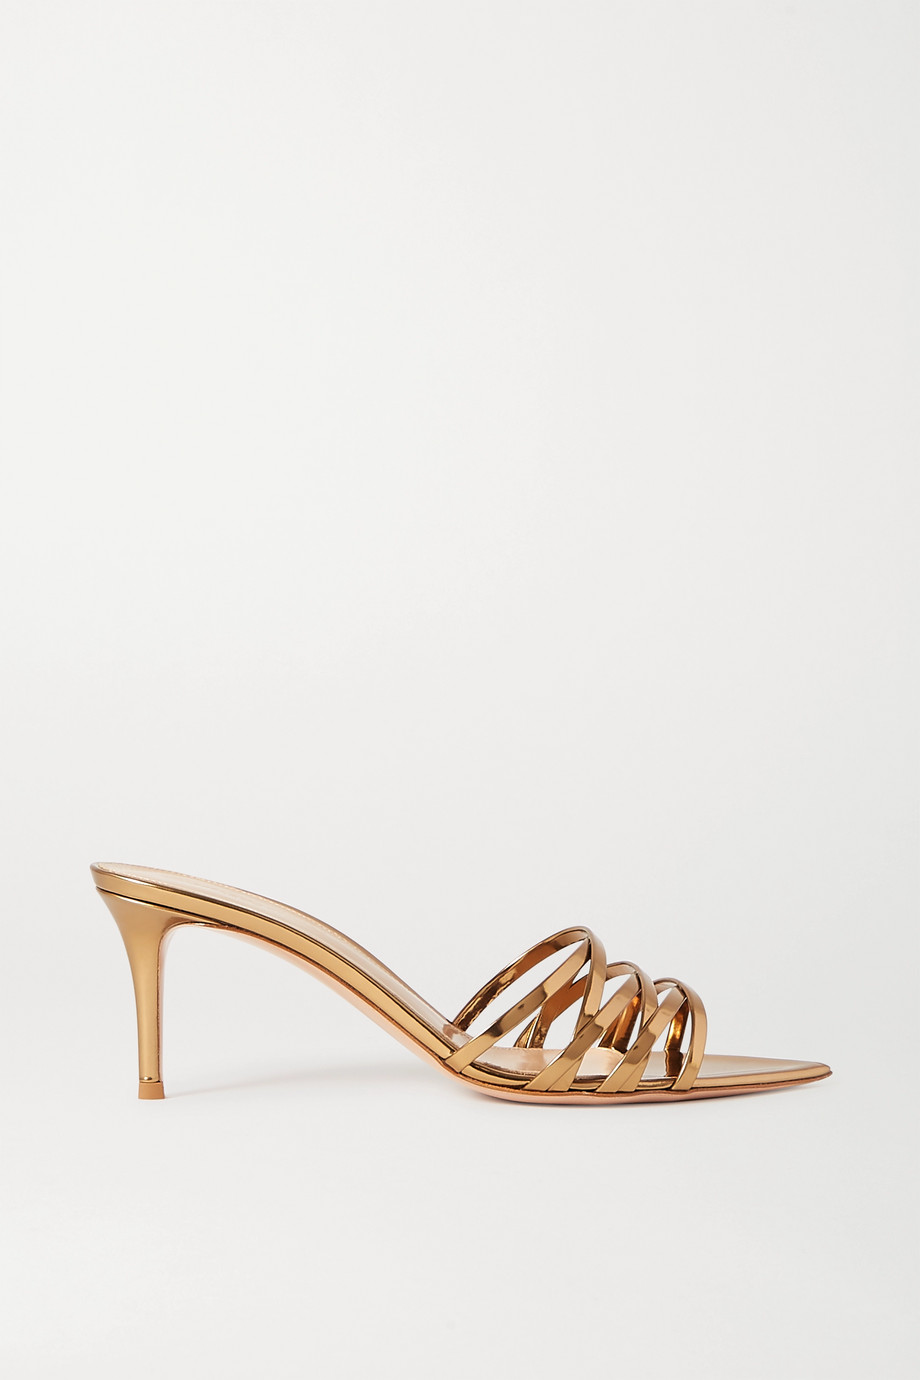 Gianvito Rossi Lita 70 metallic leather sandals